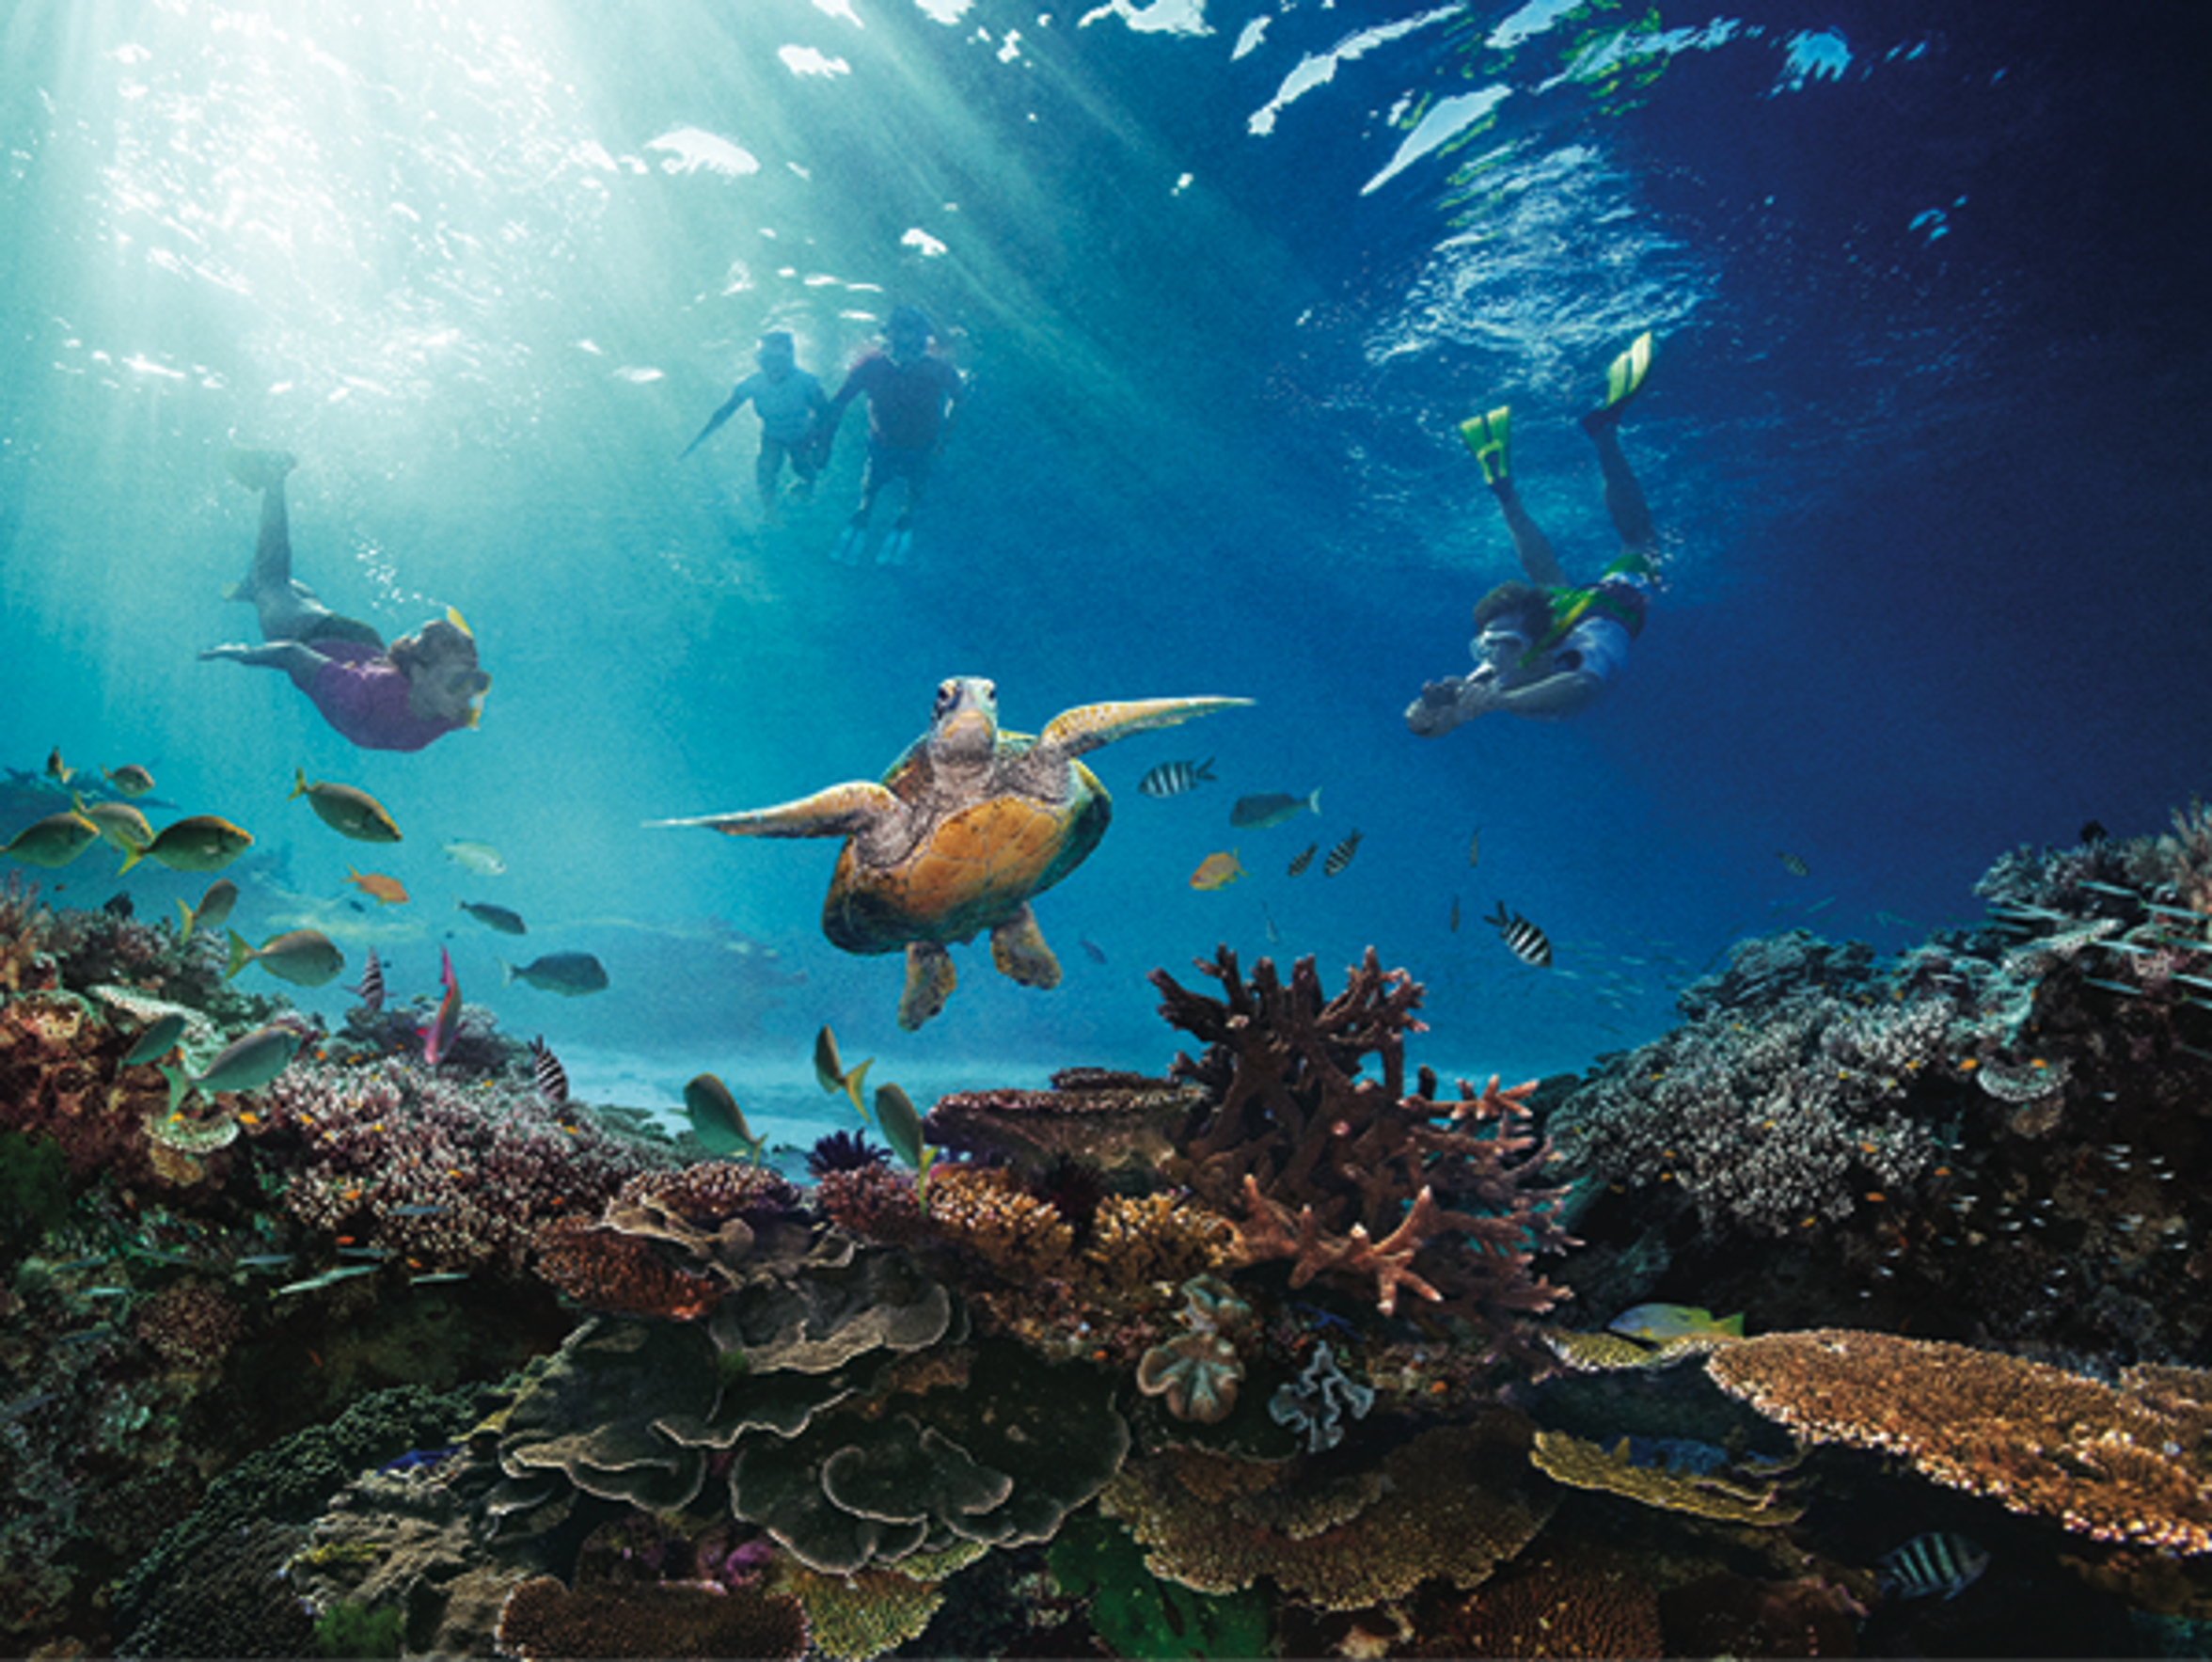 Snorkel and dive in the world's largest coral reef